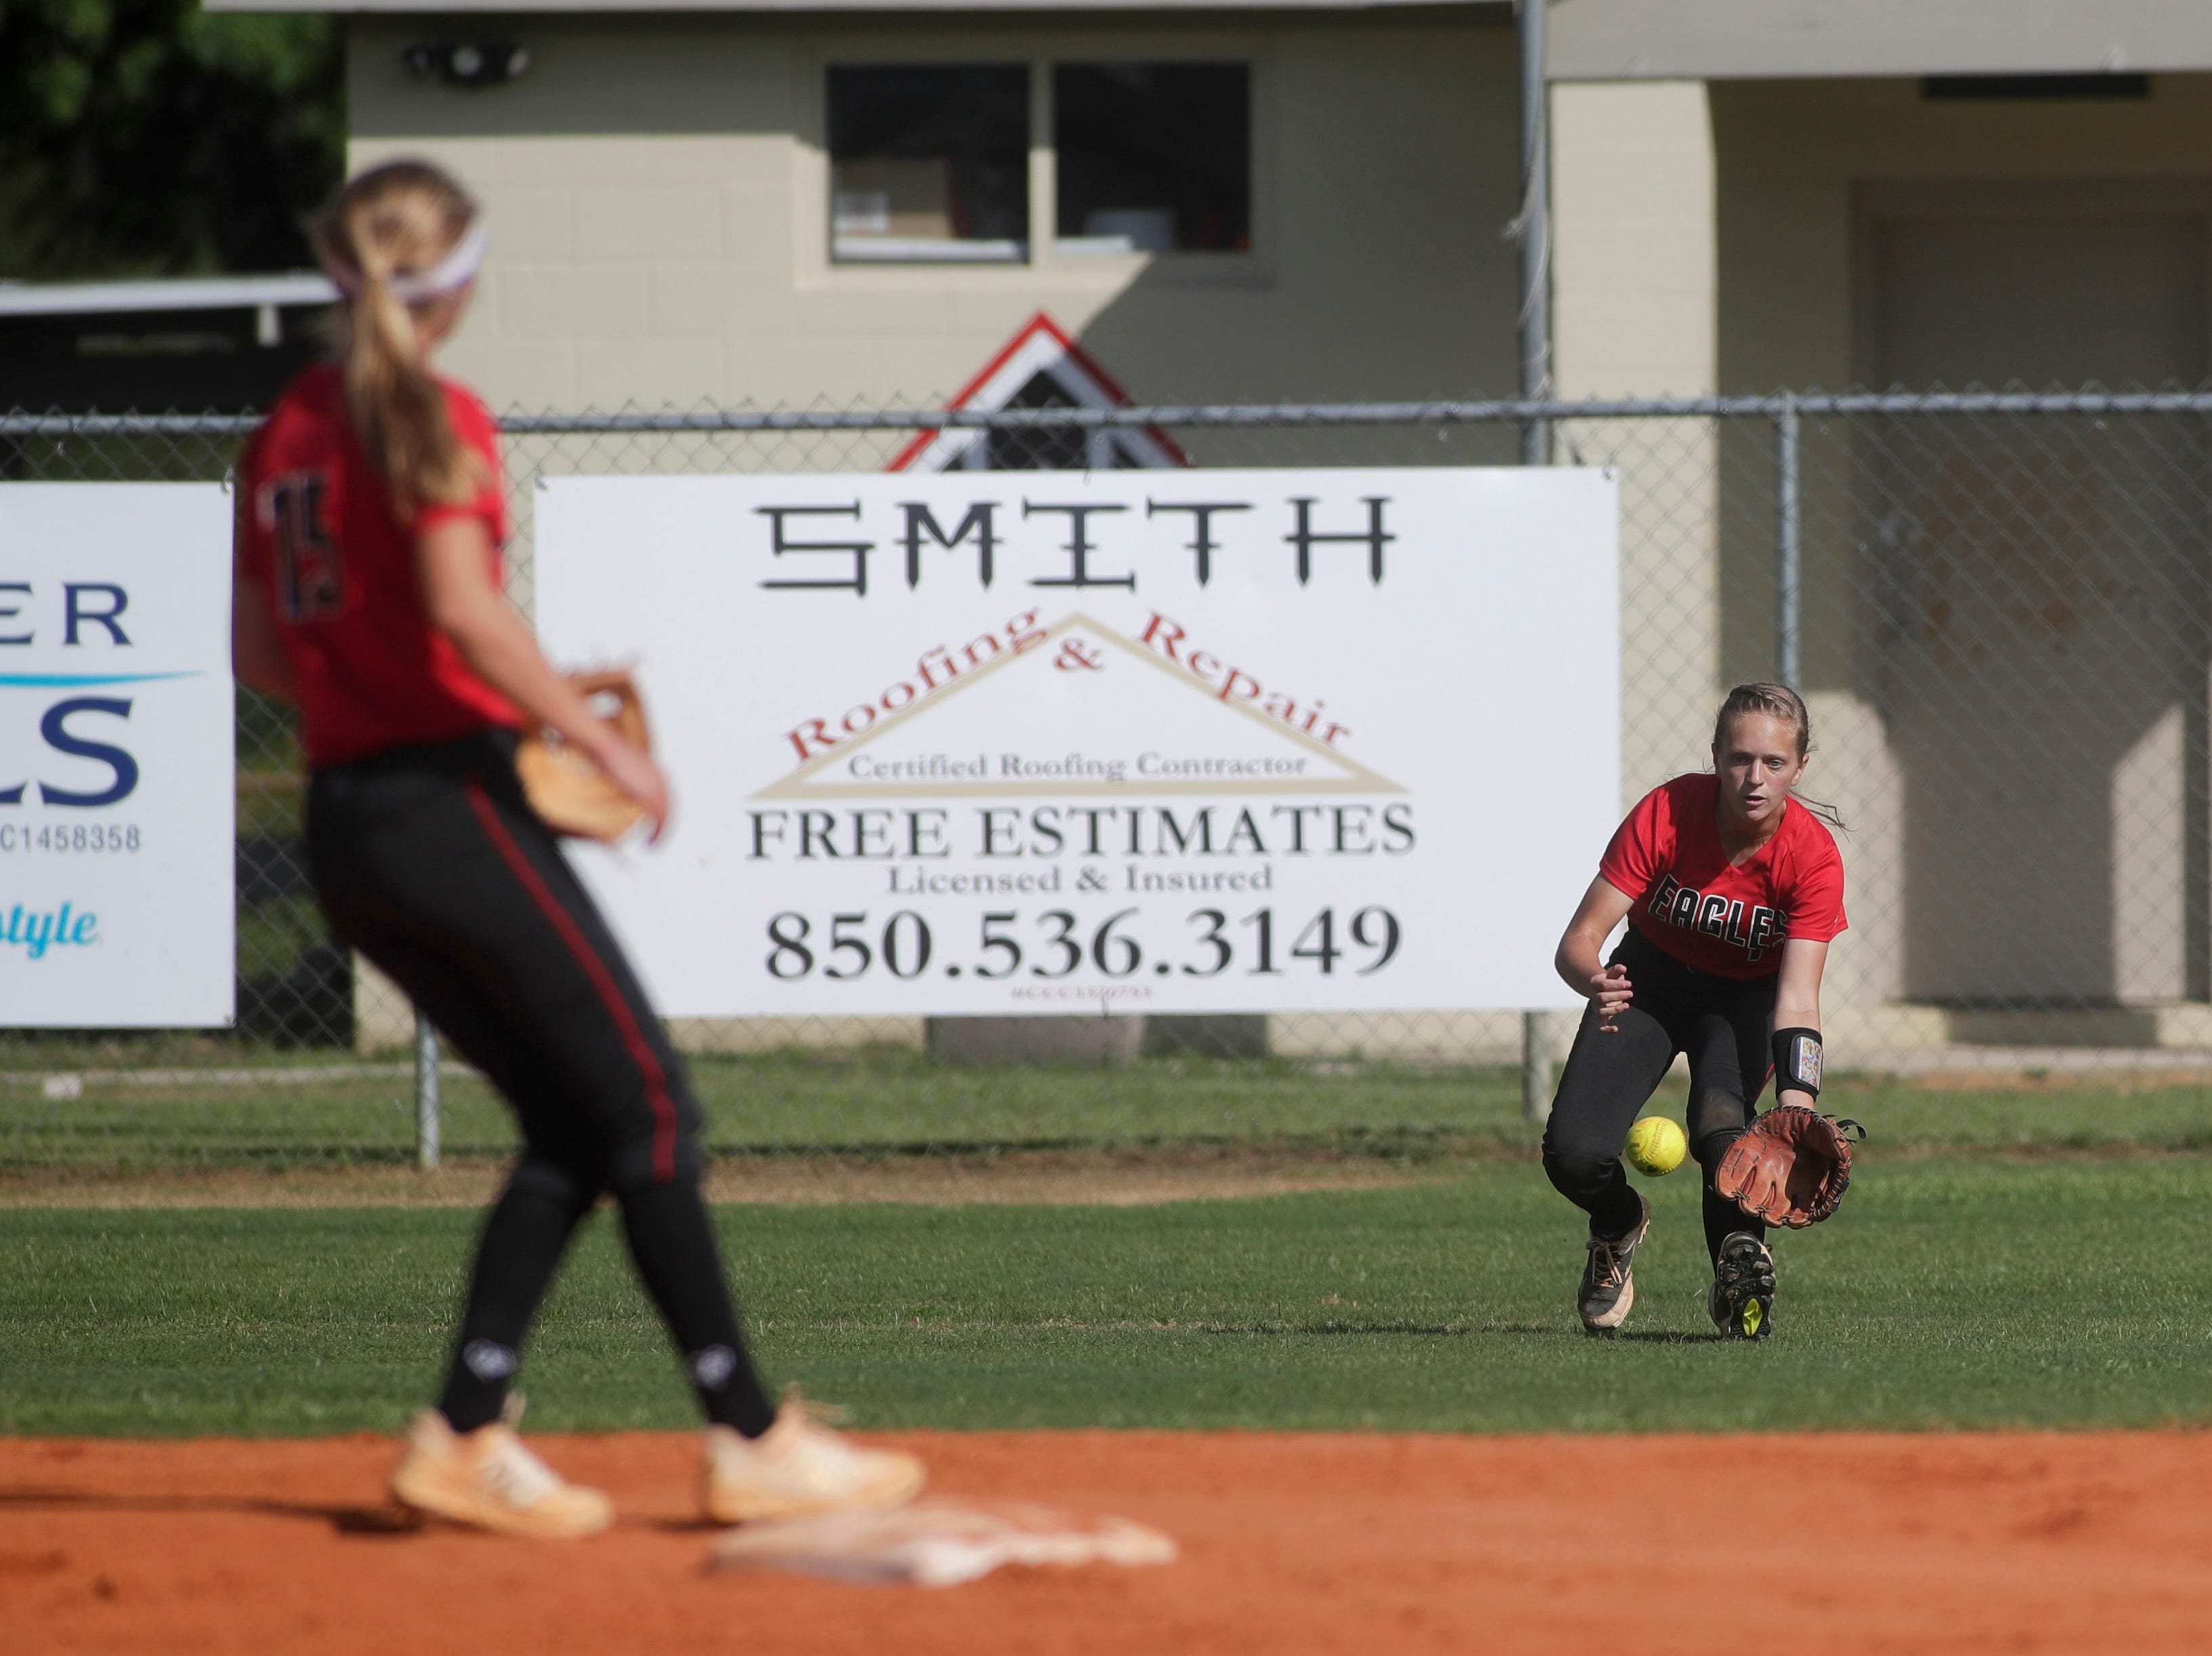 North Florida Christian's Abigail Leduc (4) fields a ball during the 1-3A regional final game between NFC and University Christian at NFC Tuesday, May 14, 2019. UC defeated NFC 16 to 11 to advance to the state tournament.